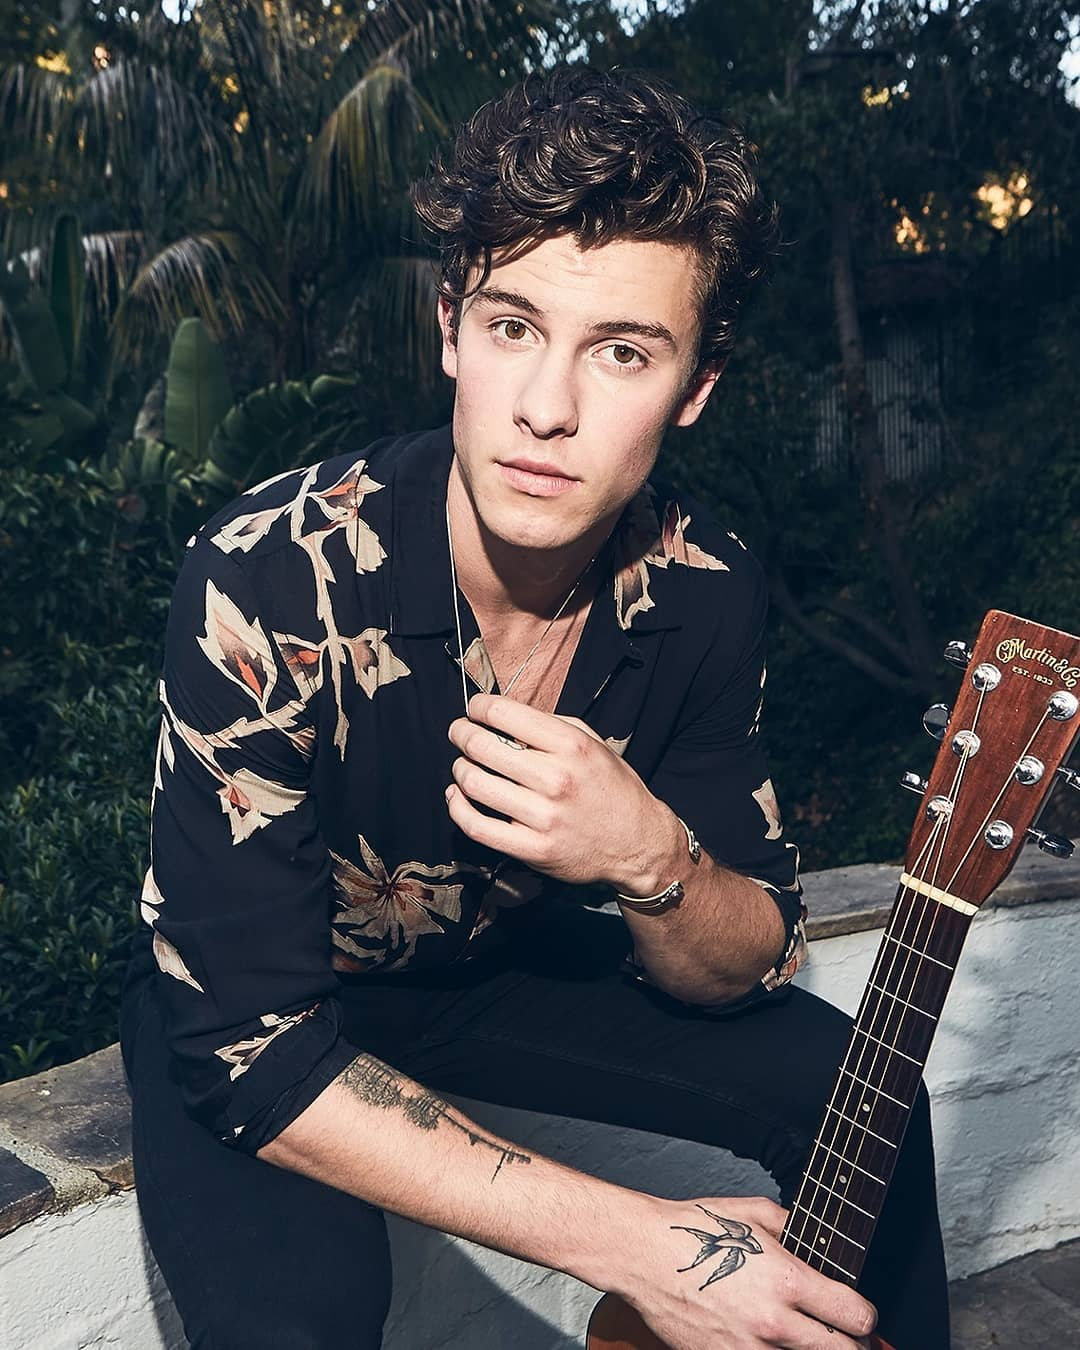 Shawn Mendes 2019 Wallpapers 1080x1350